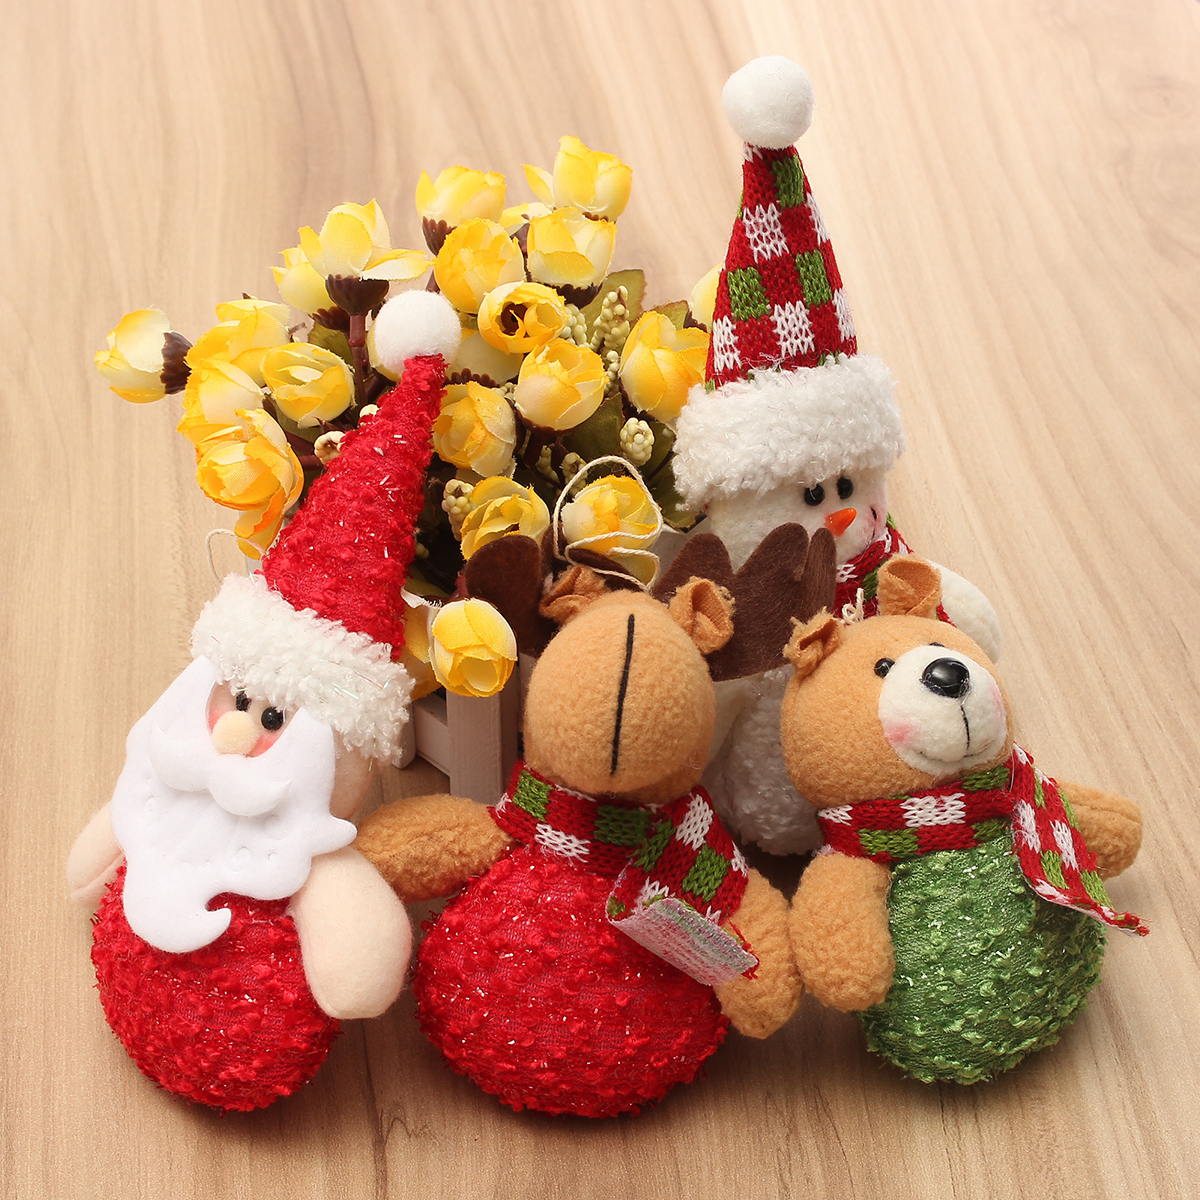 Christmas Haning Dolls Ornaments Snowman Reindeer Santa Claus Bear Xmas Decor - Photo: 3